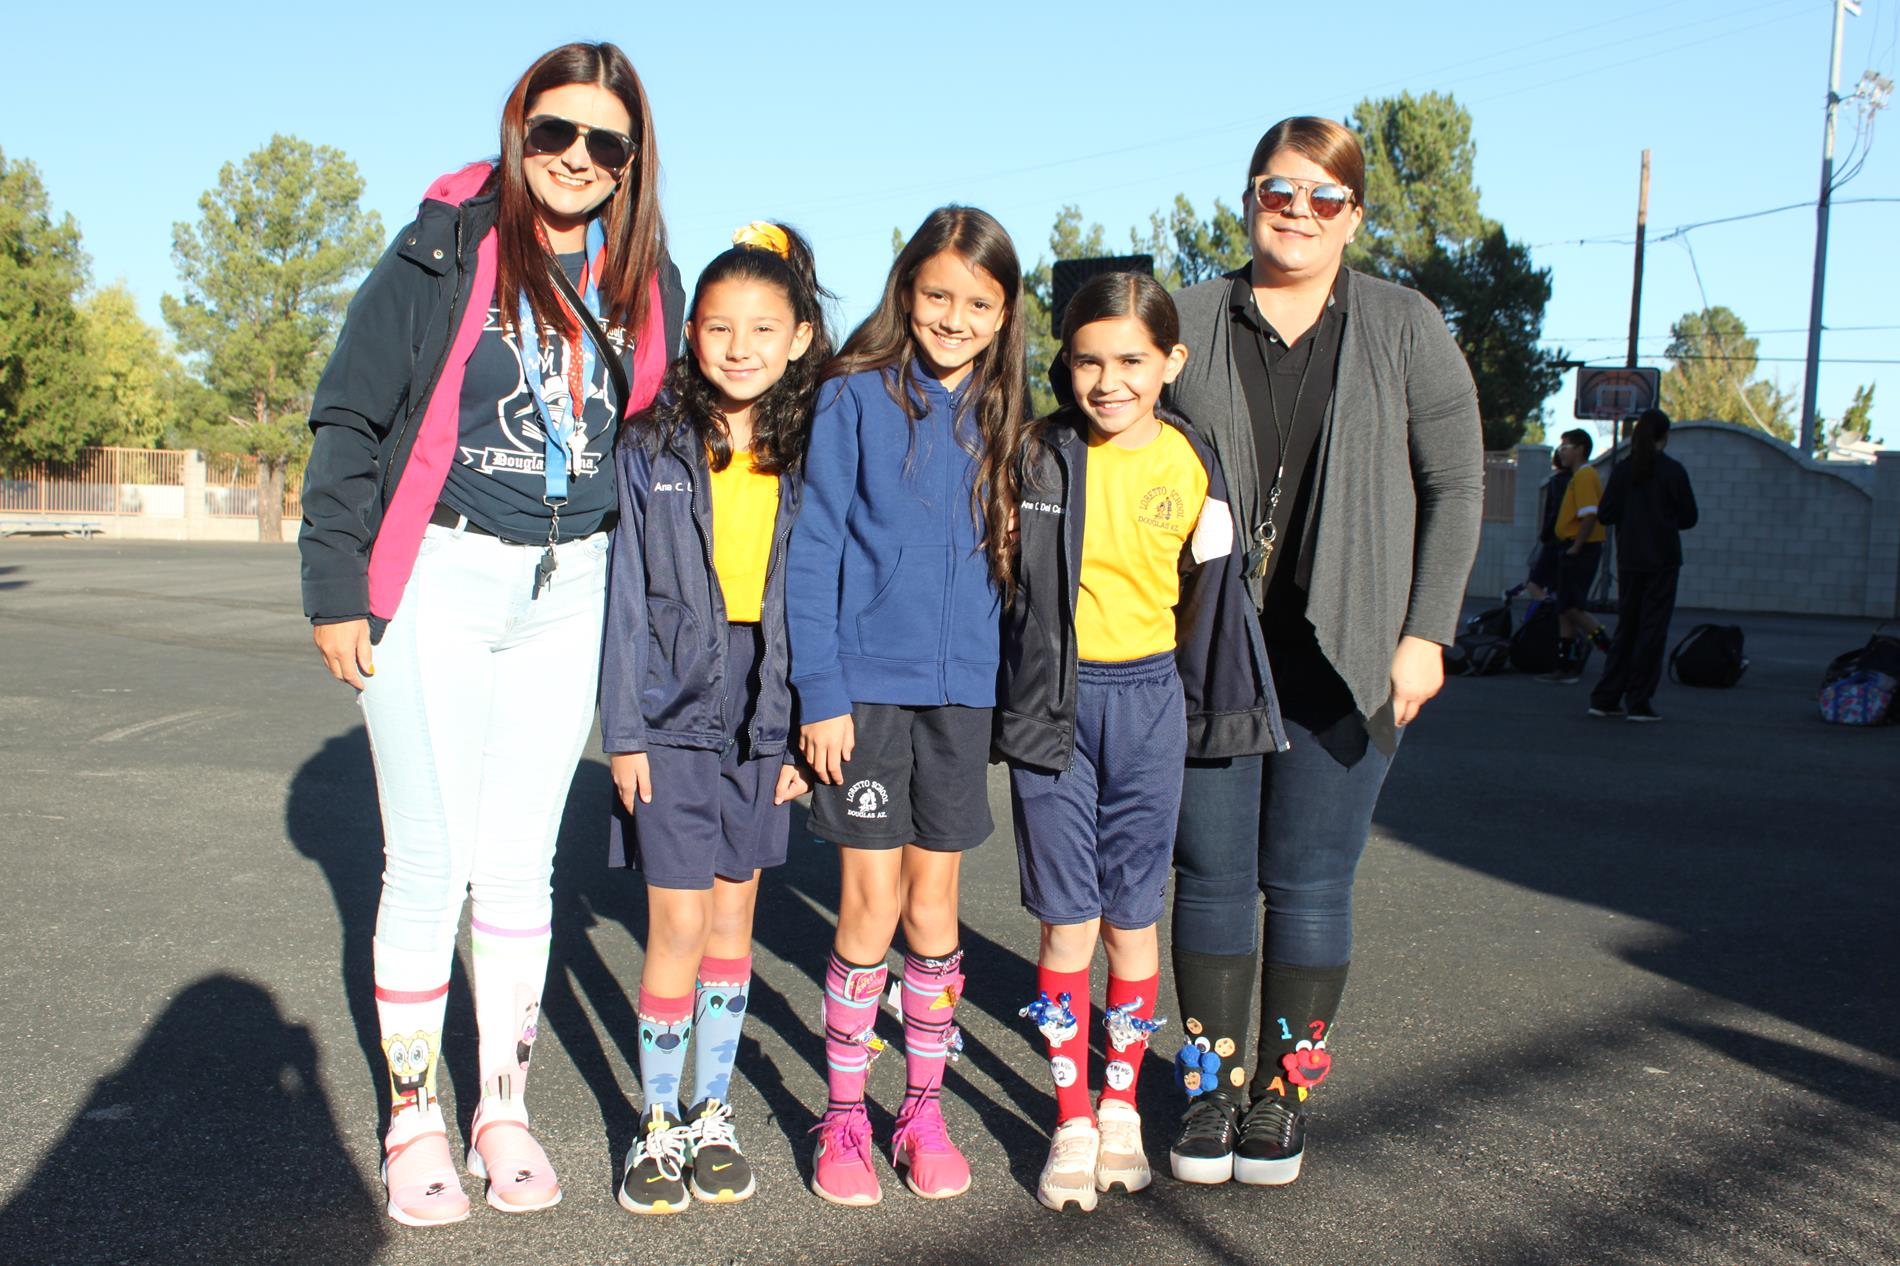 Students and staff with socks